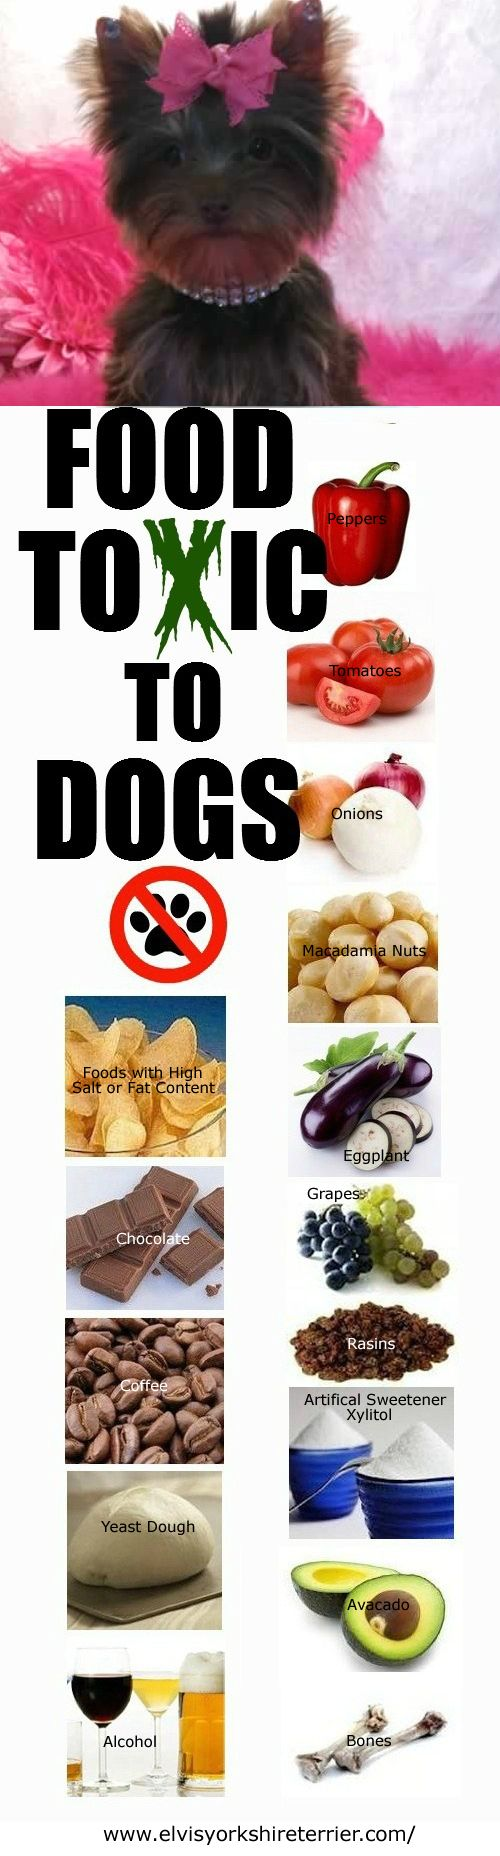 Foods toxic to dogs (good reminder and some I did not know)